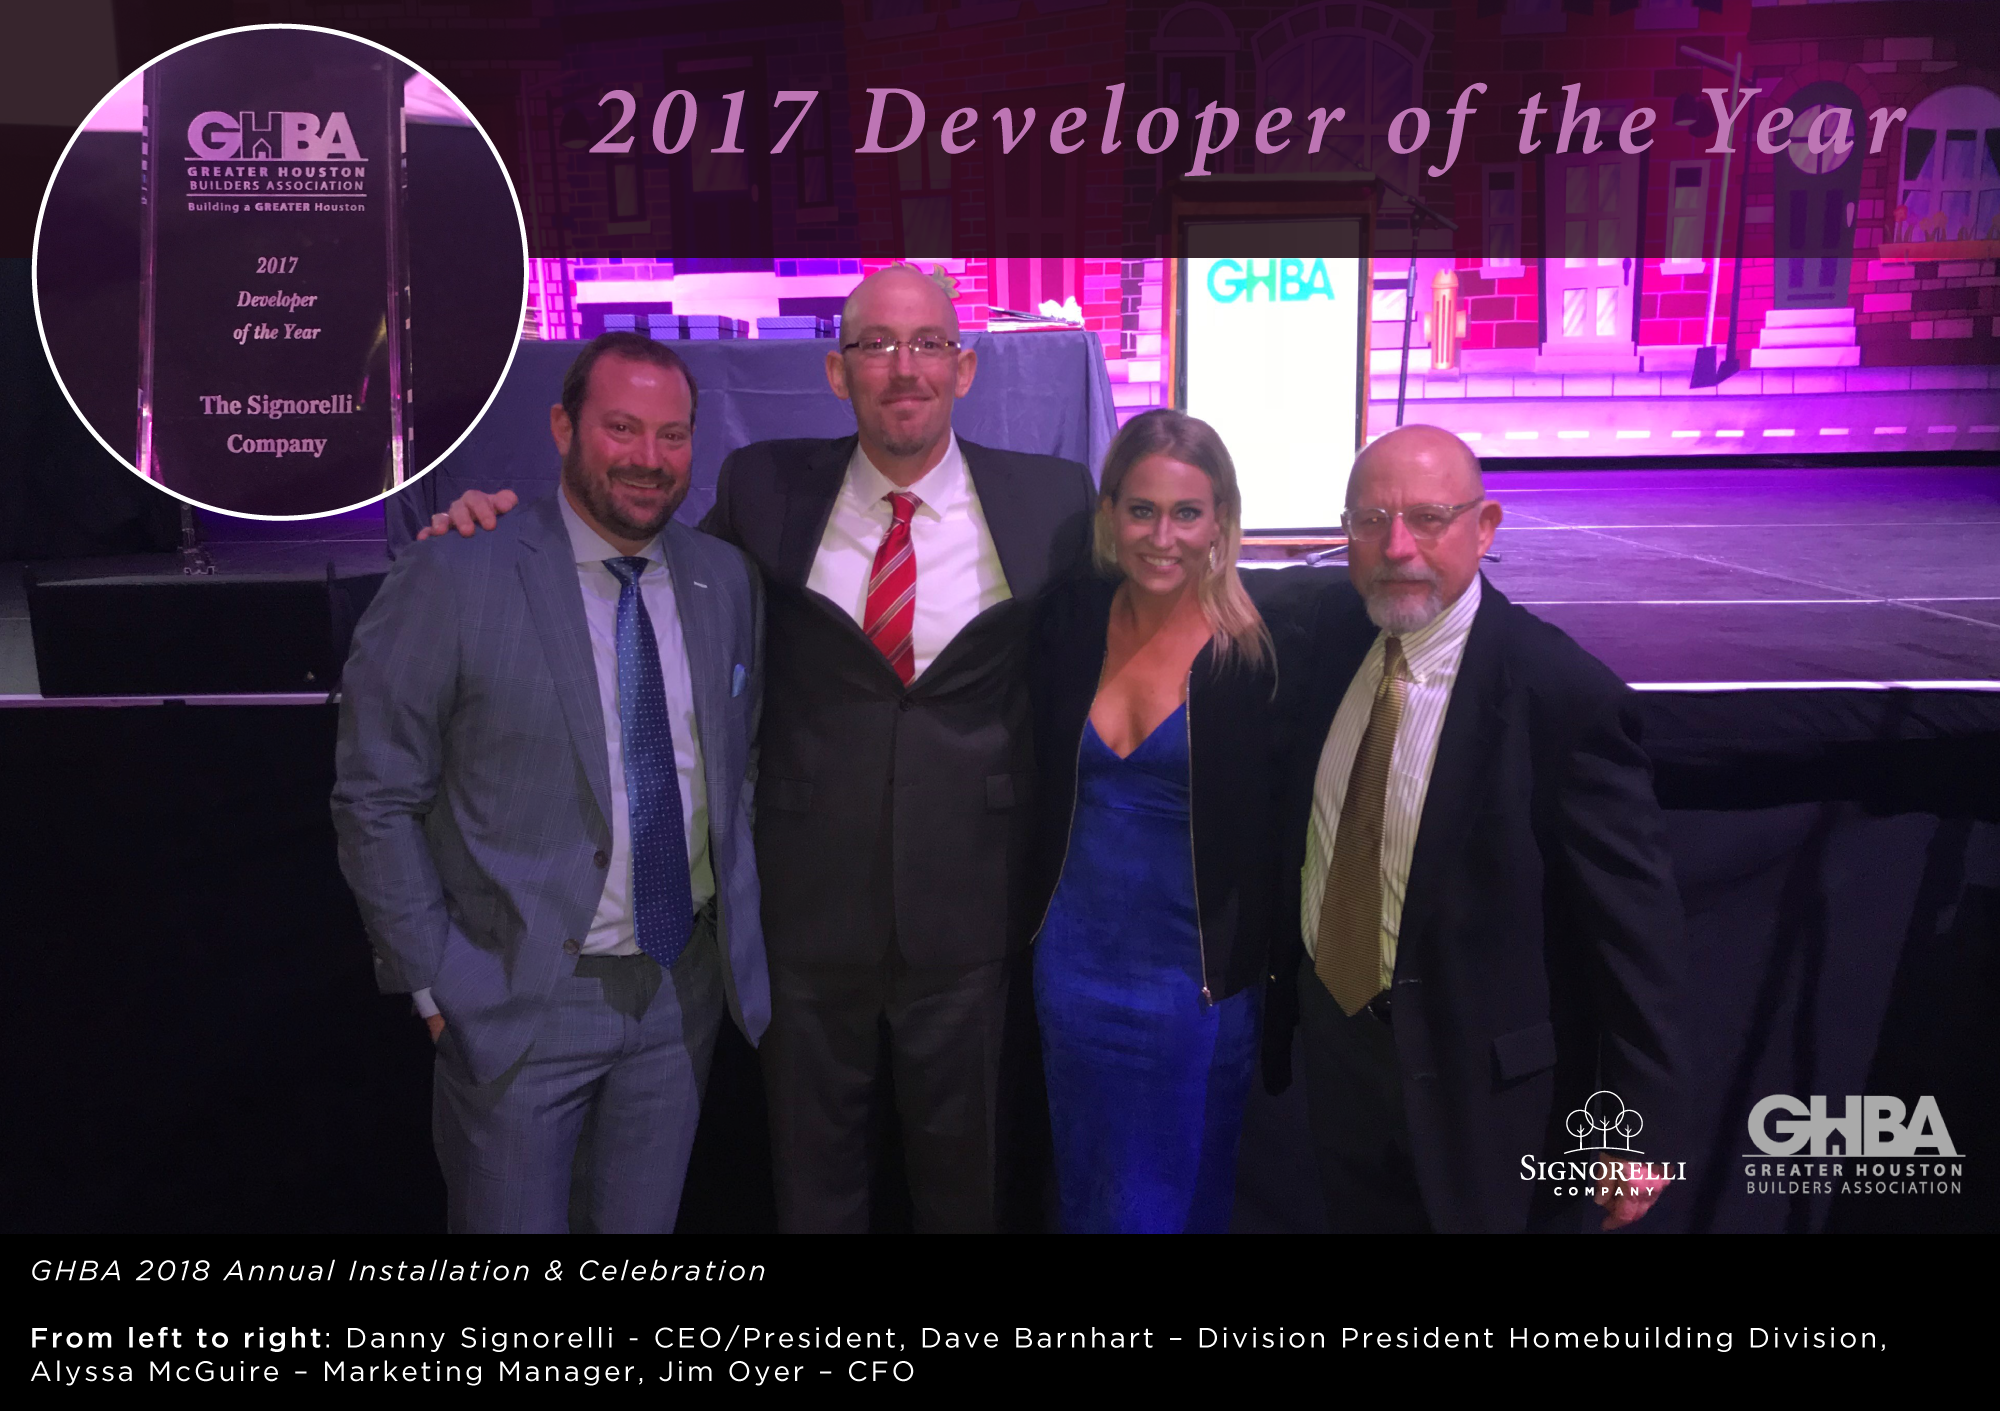 GHBA Developer of the Year